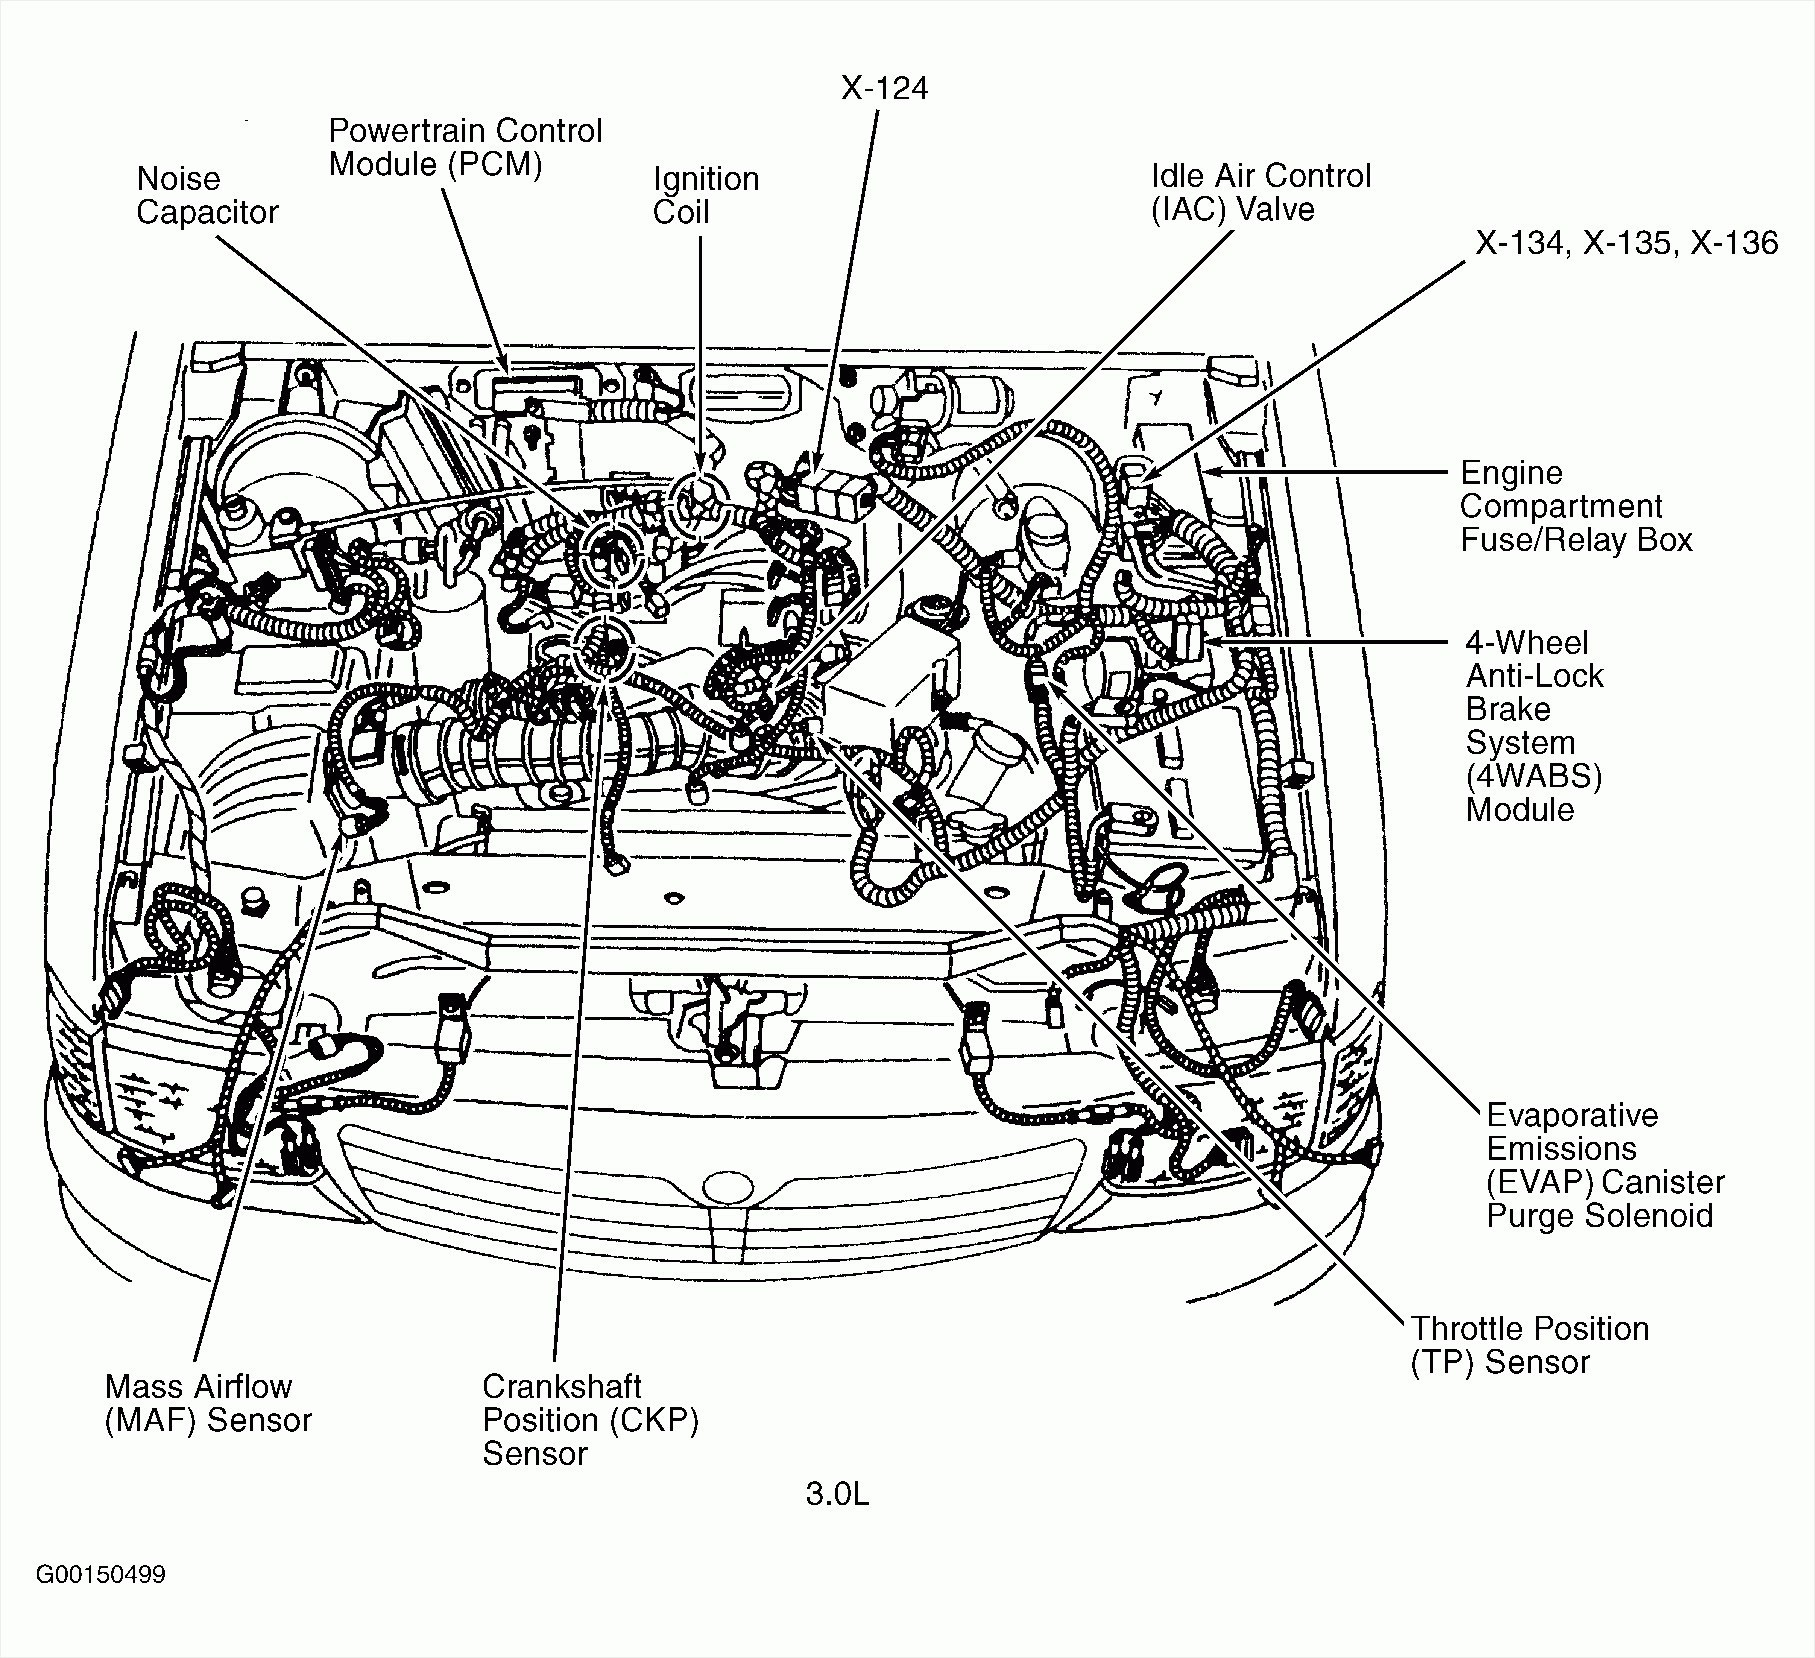 2002 isuzu Rodeo Engine Diagram isuzu Engine Diagram Wiring Diagram 500 Of 2002 isuzu Rodeo Engine Diagram